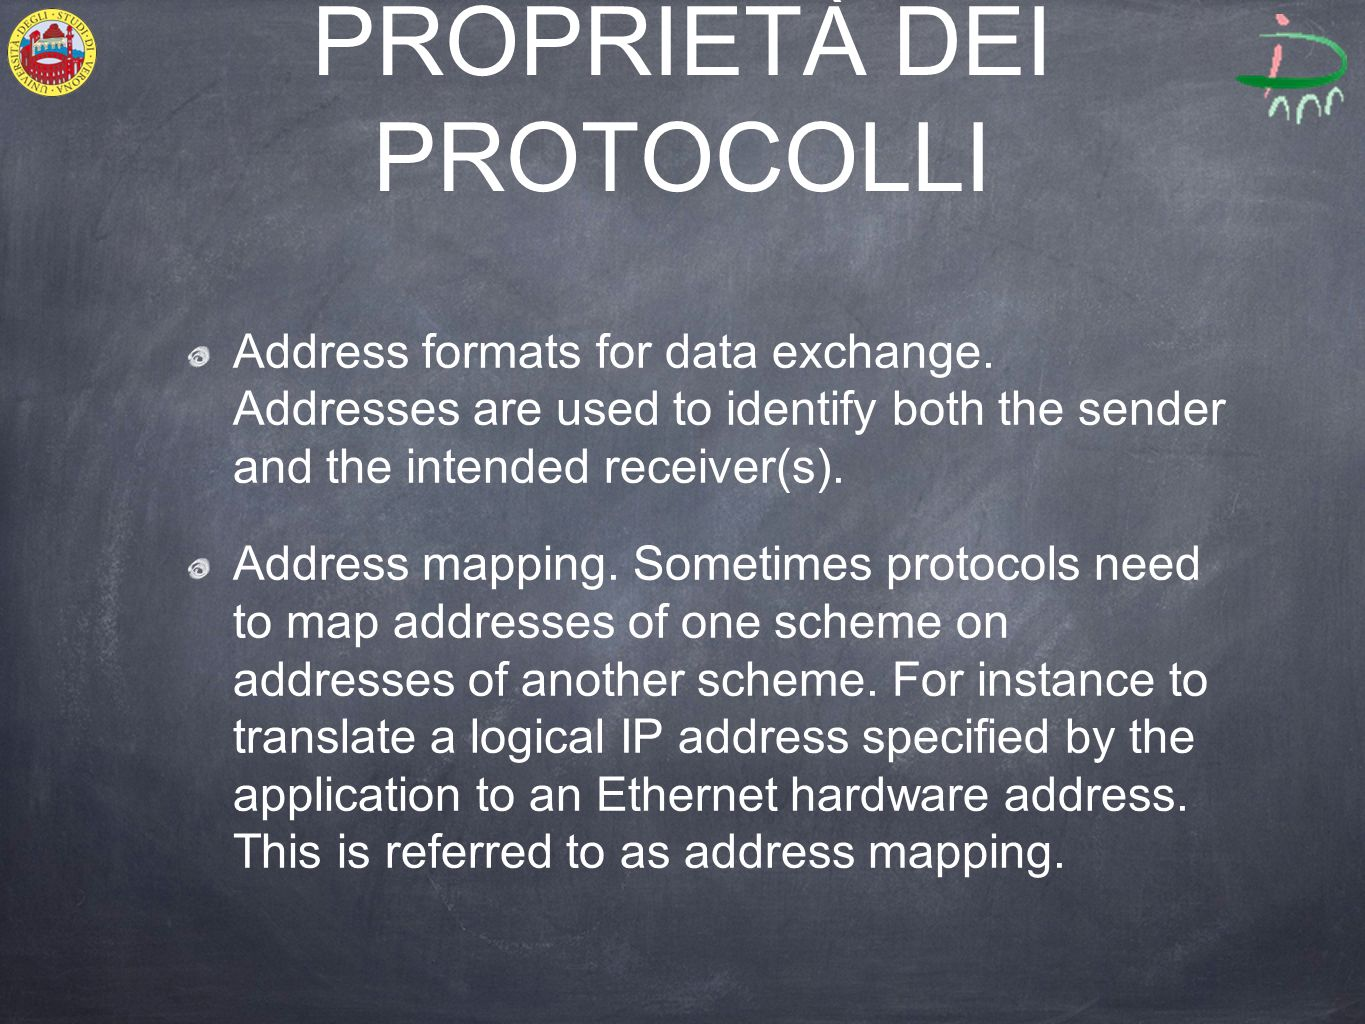 PROPRIETÀ DEI PROTOCOLLI Address formats for data exchange.